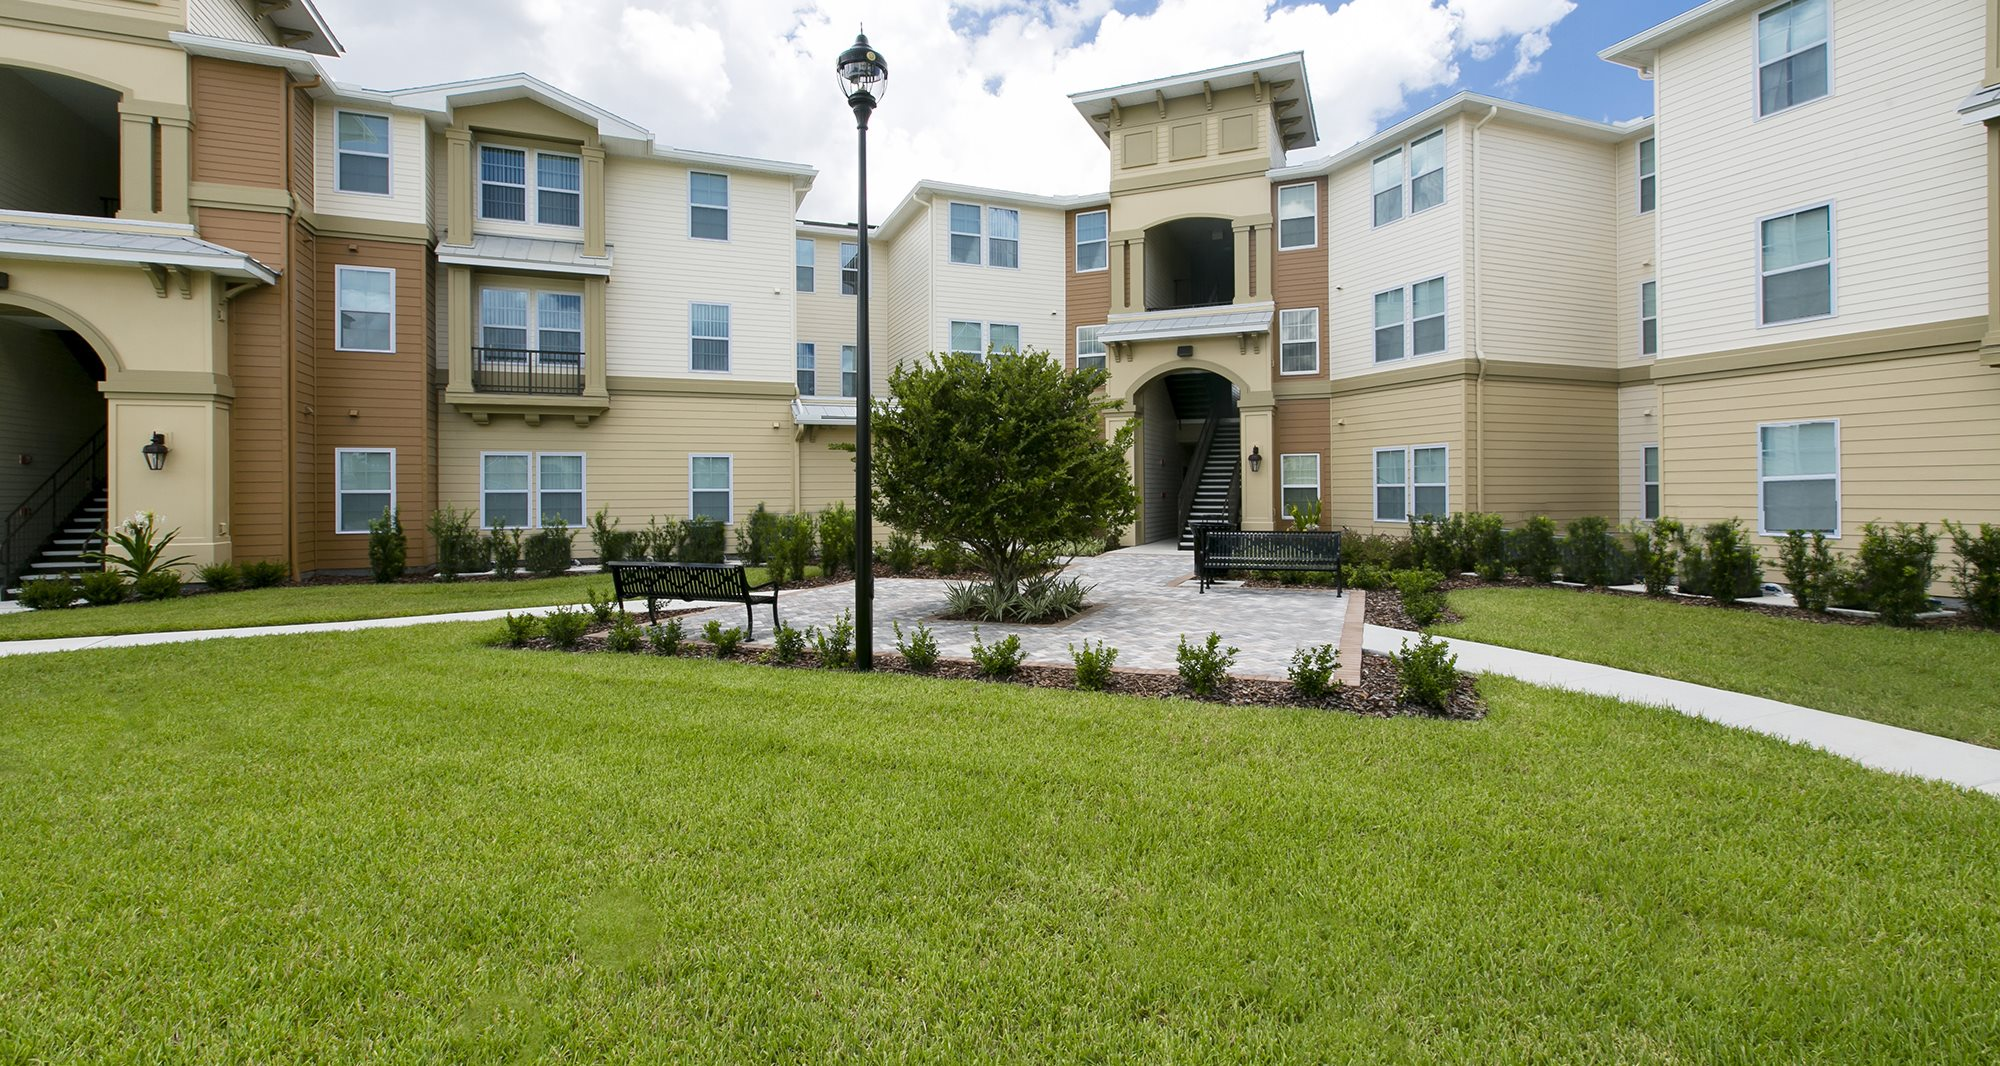 Landstar Park Apartments for rent in Orlando, FL. Make this community your new home or visit other Concord Rents communities at ConcordRents.com. Building exterior